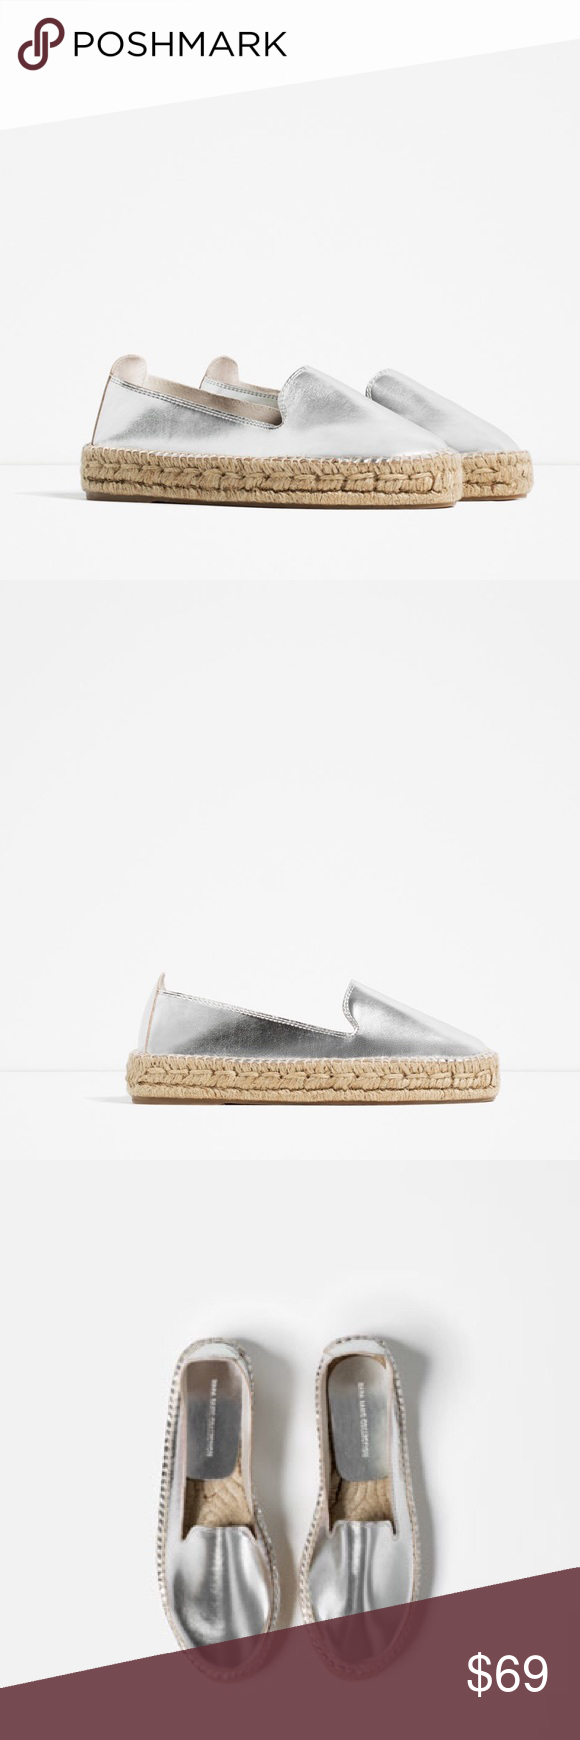 dd3643dafb2 ZARA Espadrilles BRAND NEW Next day shipment for this item. Brand new with  tags